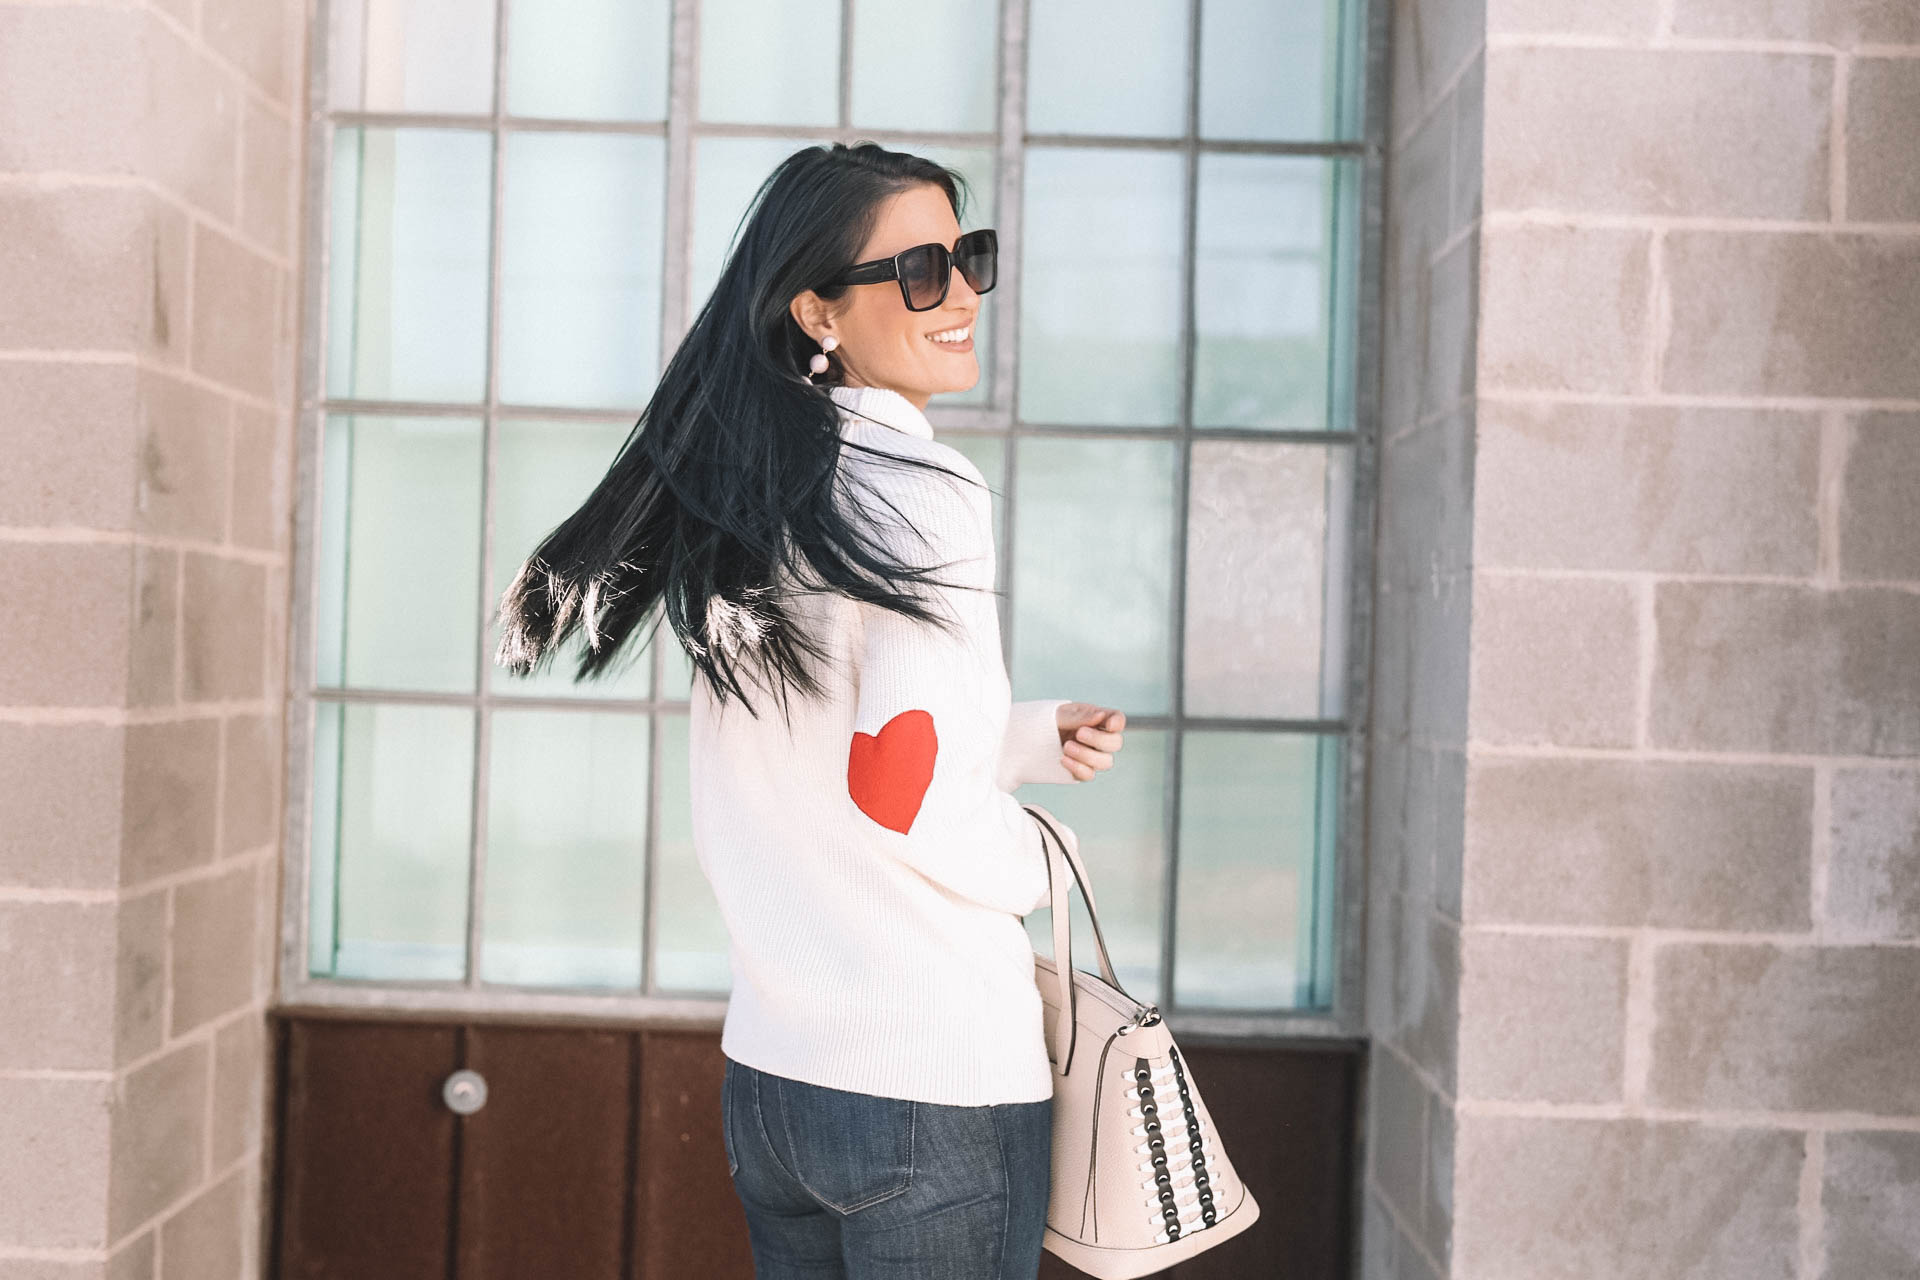 DTKAustin shares why she is dressing casual for Valentine's Day with this heart sleeve Chicwish turtleneck sweater. - Valentines Day Outfit idea from popular Austin Fashion blogger Dressed to Kill